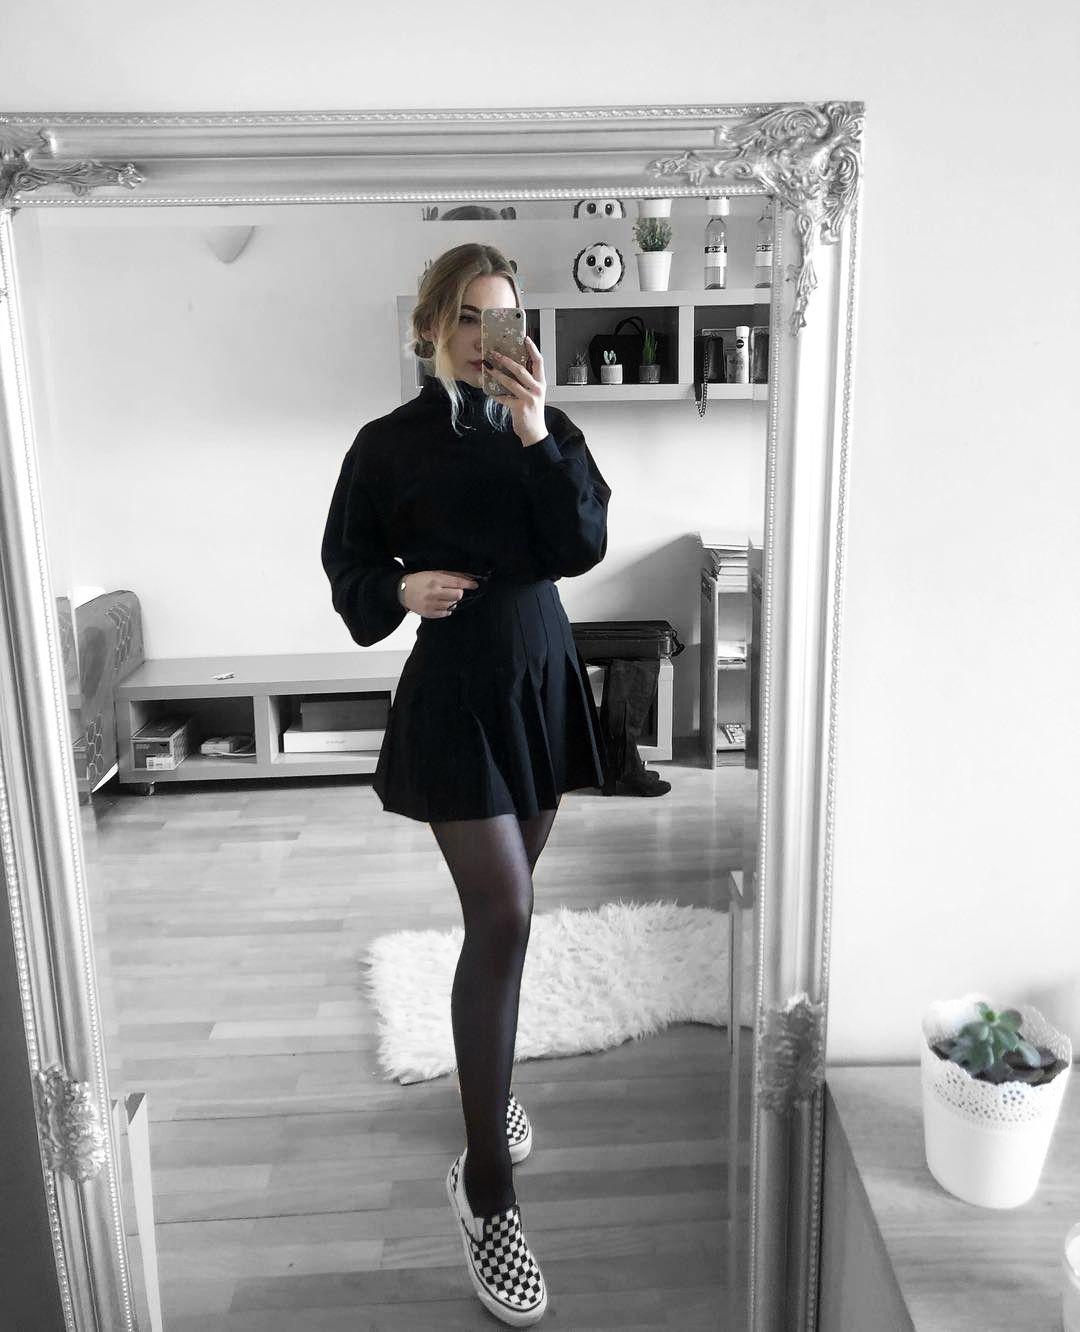 Looking Fab In Our Black Tennis Skirt Shopskydance Eu Ootd Outfit Aesthetic Inspo Tumblr The Fashion Skirt Outfits Grunge Skirt Outfit Tennis Skirt Outfit